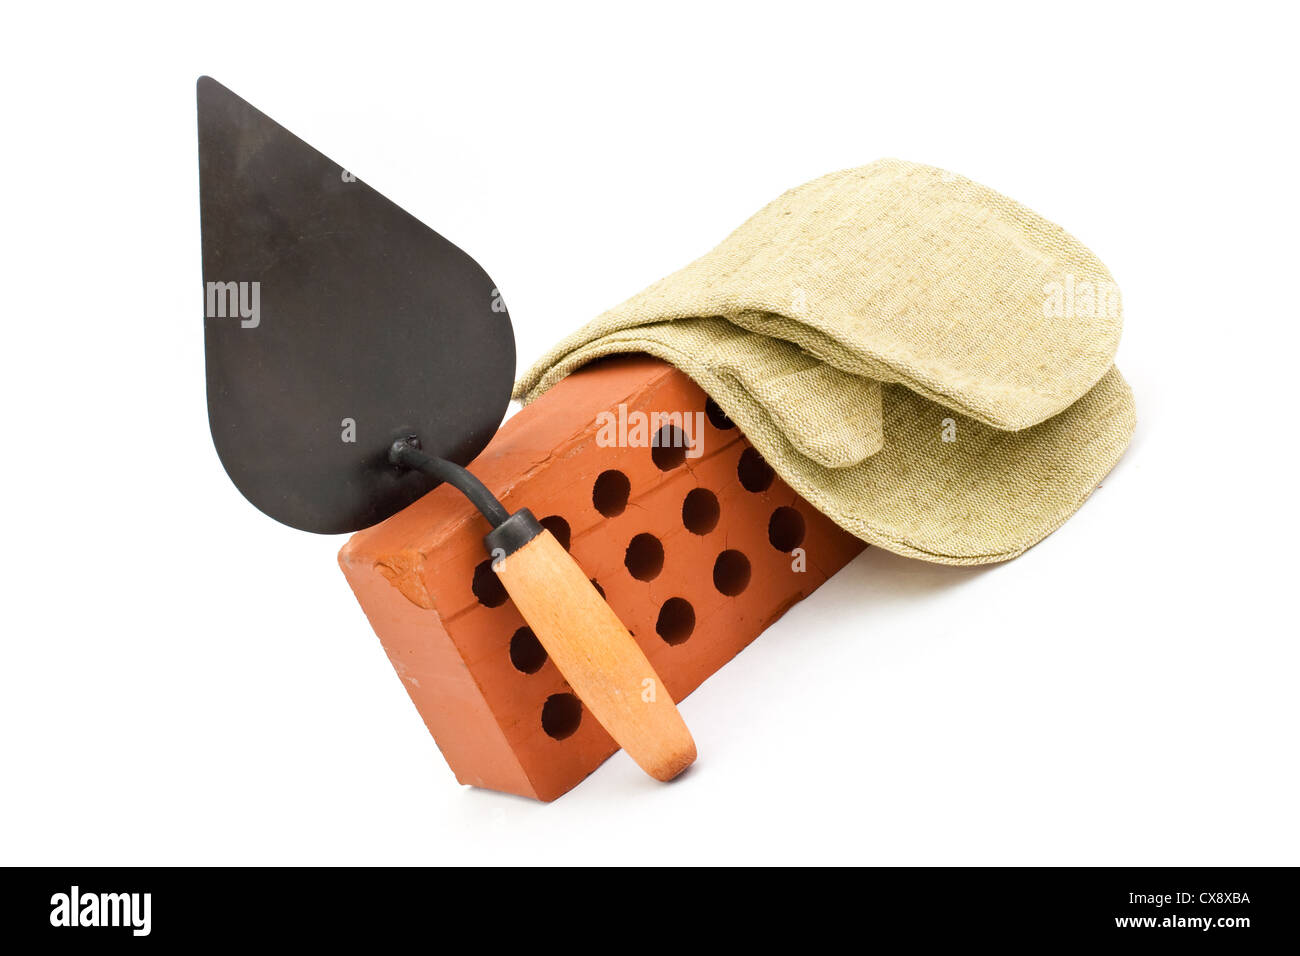 Red perforated ceramic brick, trowel and gauntlet isolated on white - Stock Image